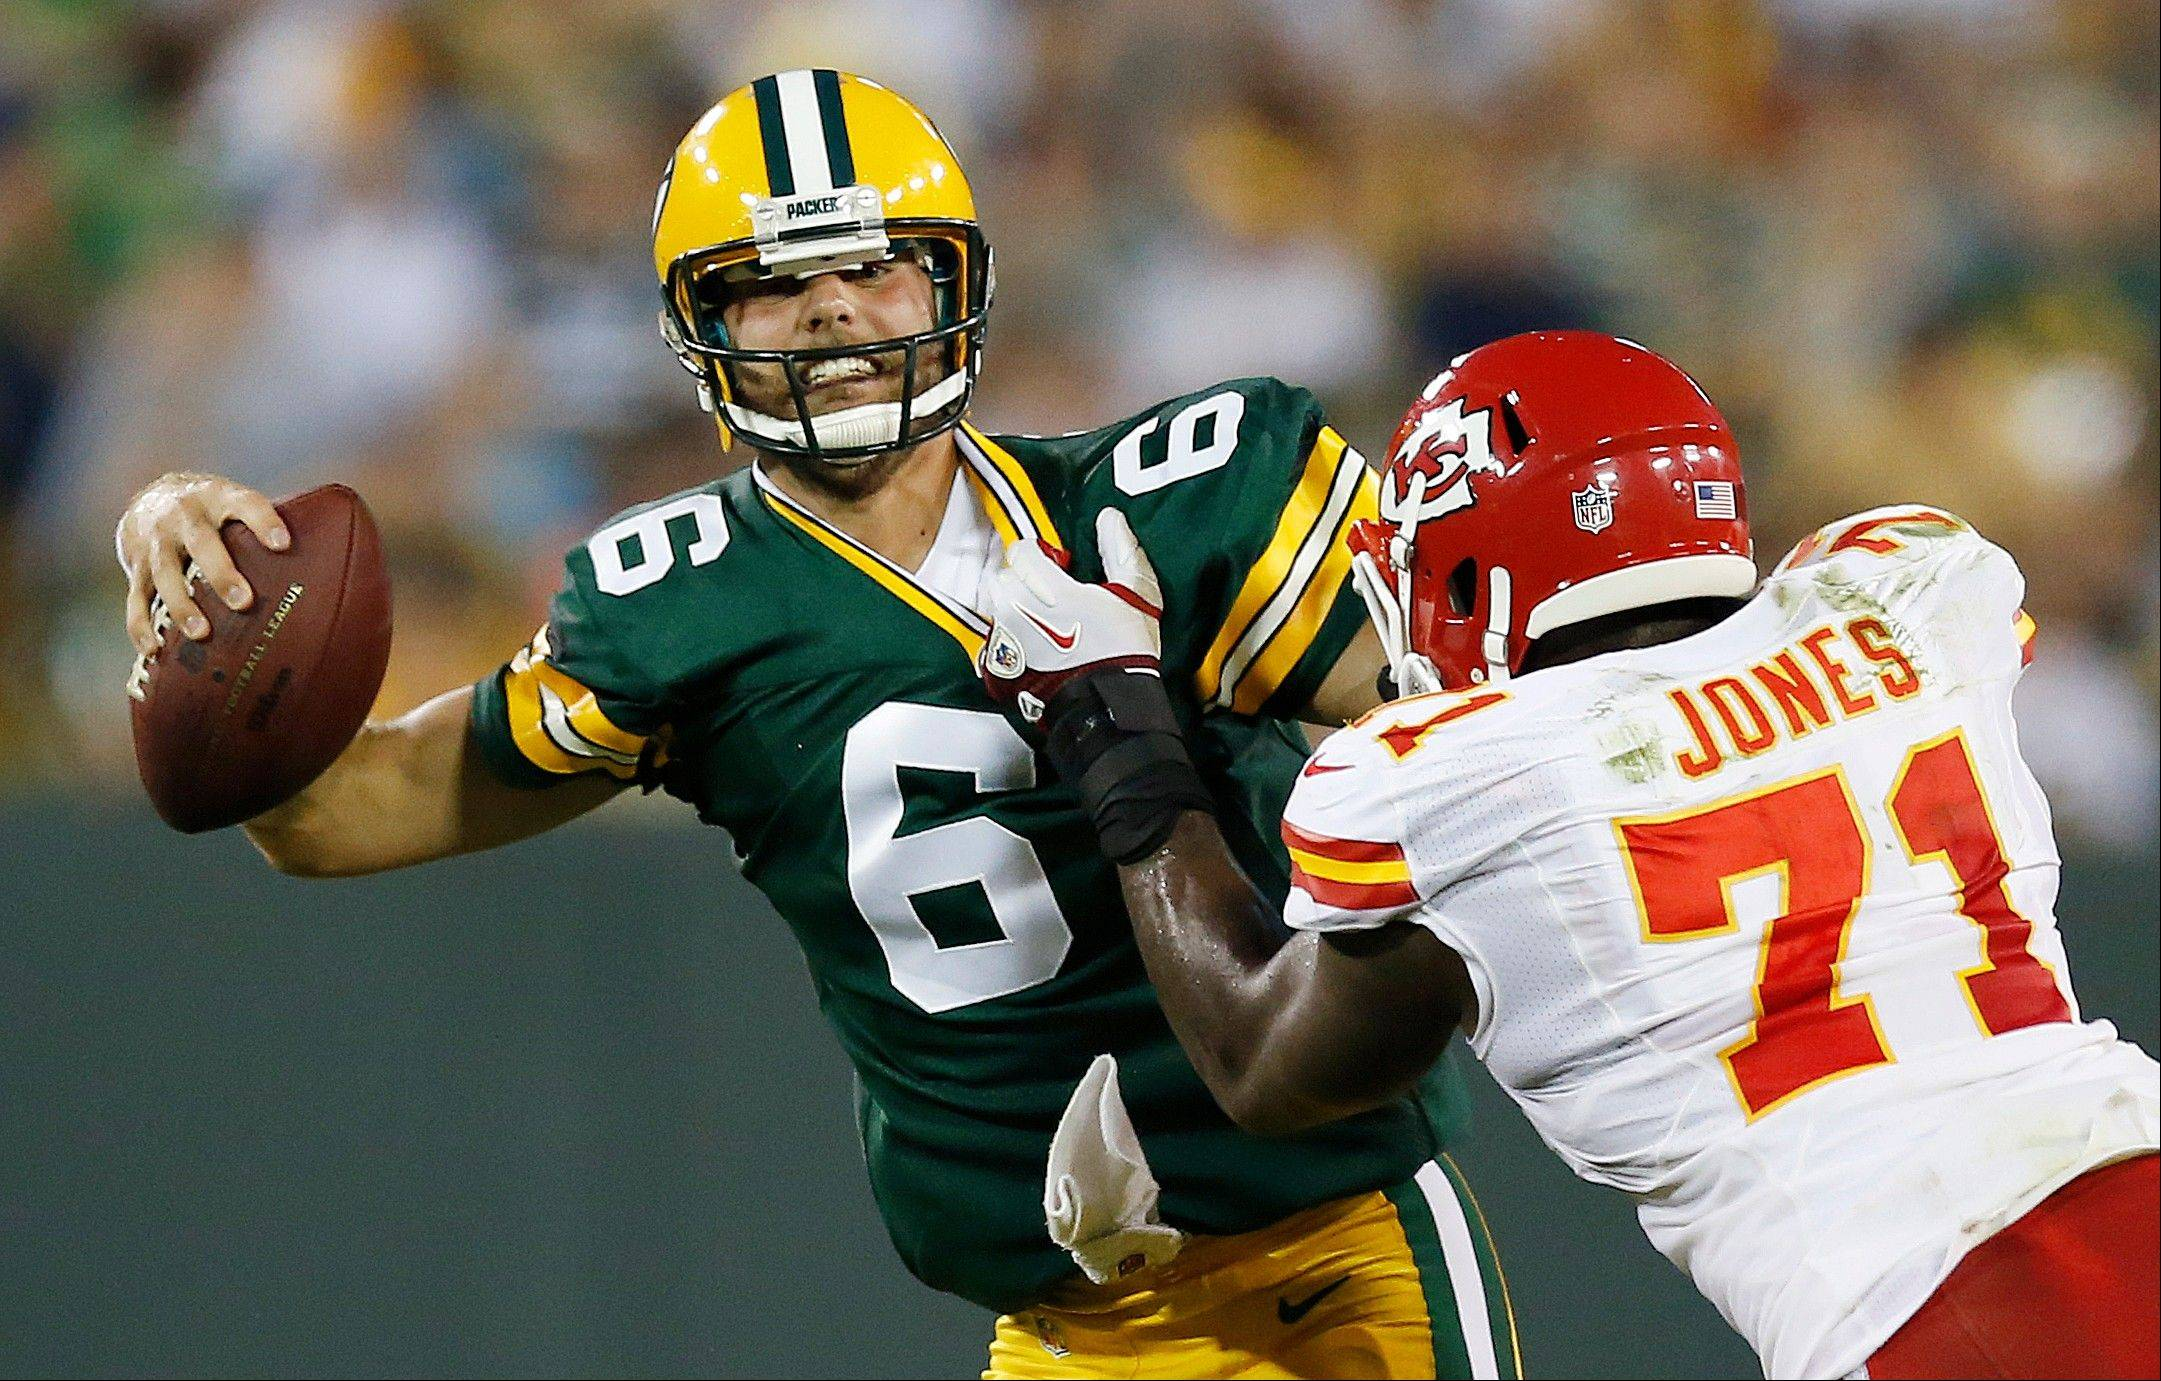 Kansas City�s Jeff Allen pressures Green Bay Packers quarterback Graham Harrell during the second half of a preseason game Thursday in Green Bay, Wis.